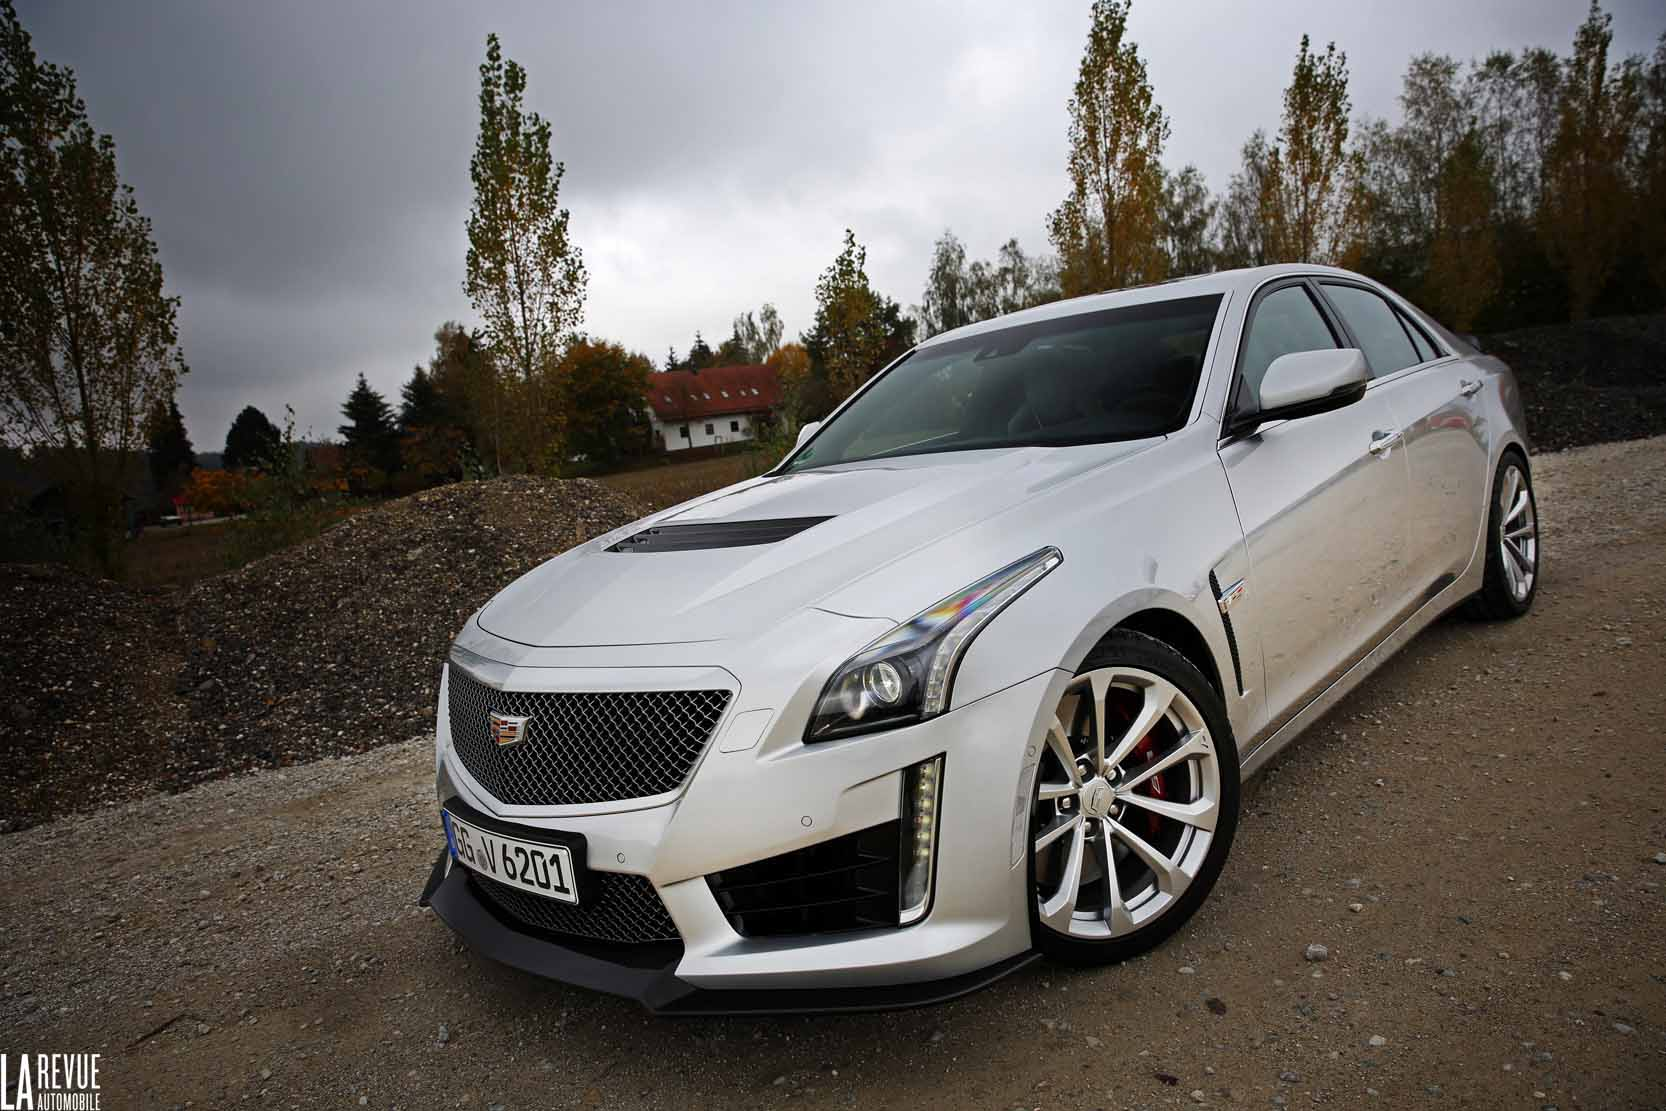 Exterieur_Cadillac-CTS-V-2015_11